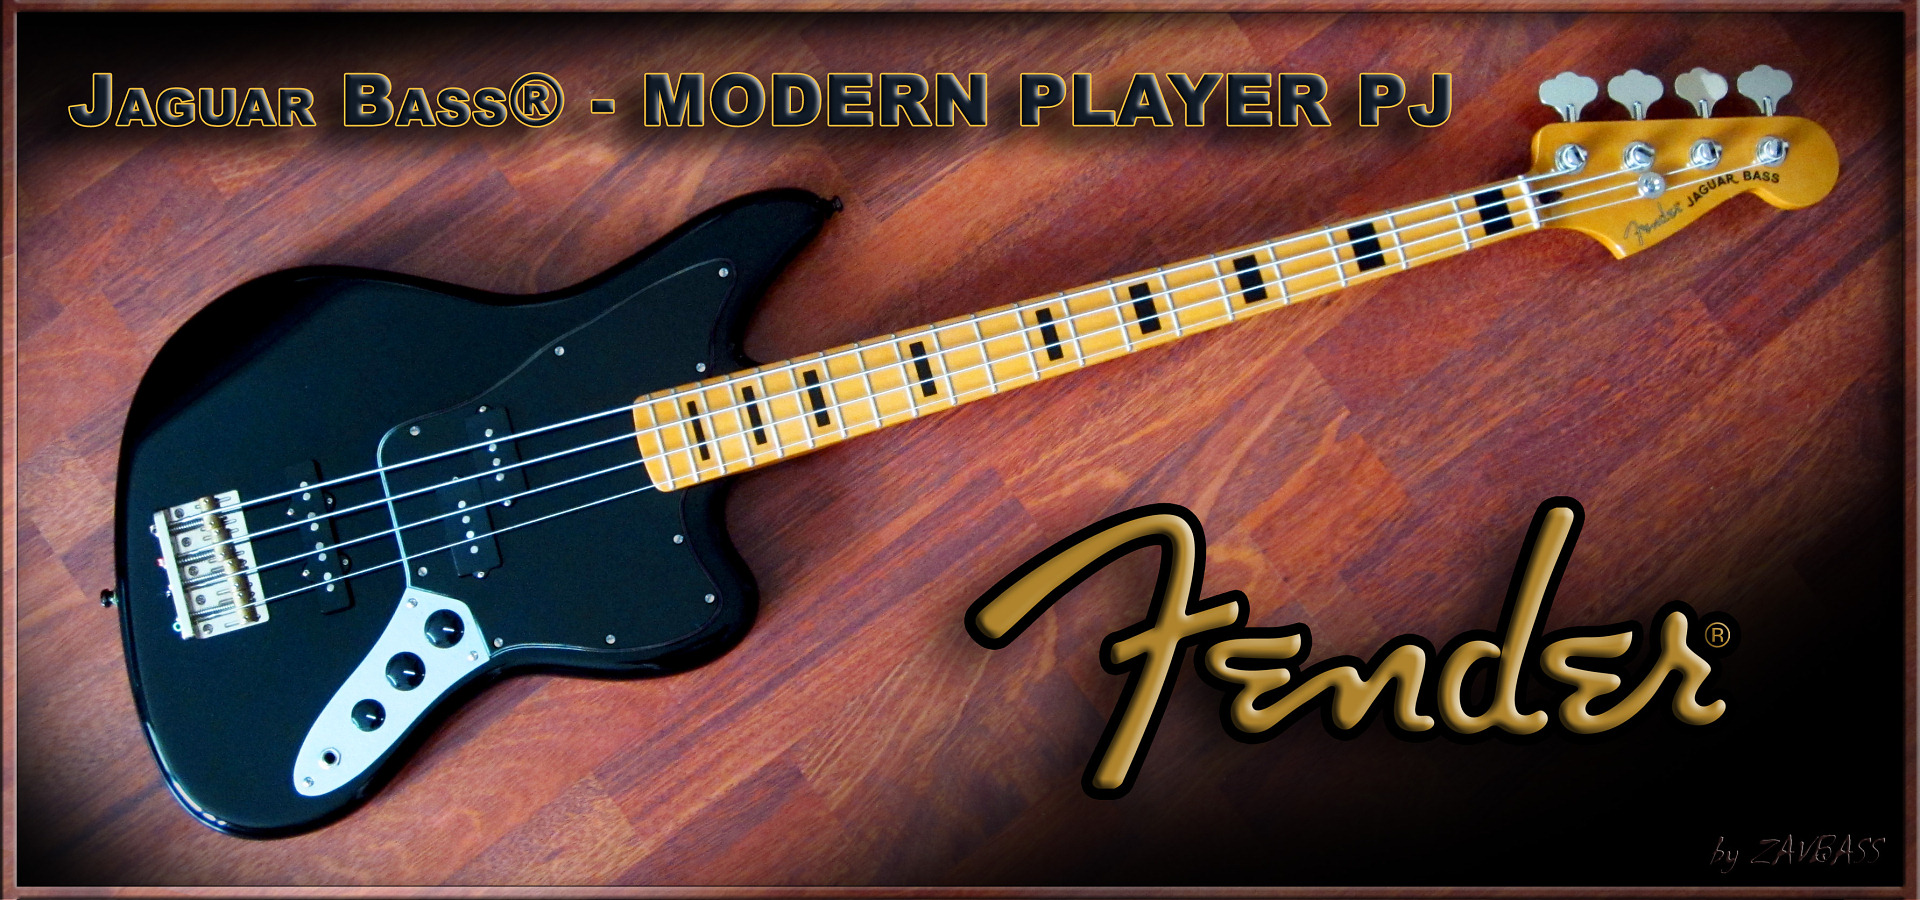 fender modern player jaguar bass image 1872375. Black Bedroom Furniture Sets. Home Design Ideas